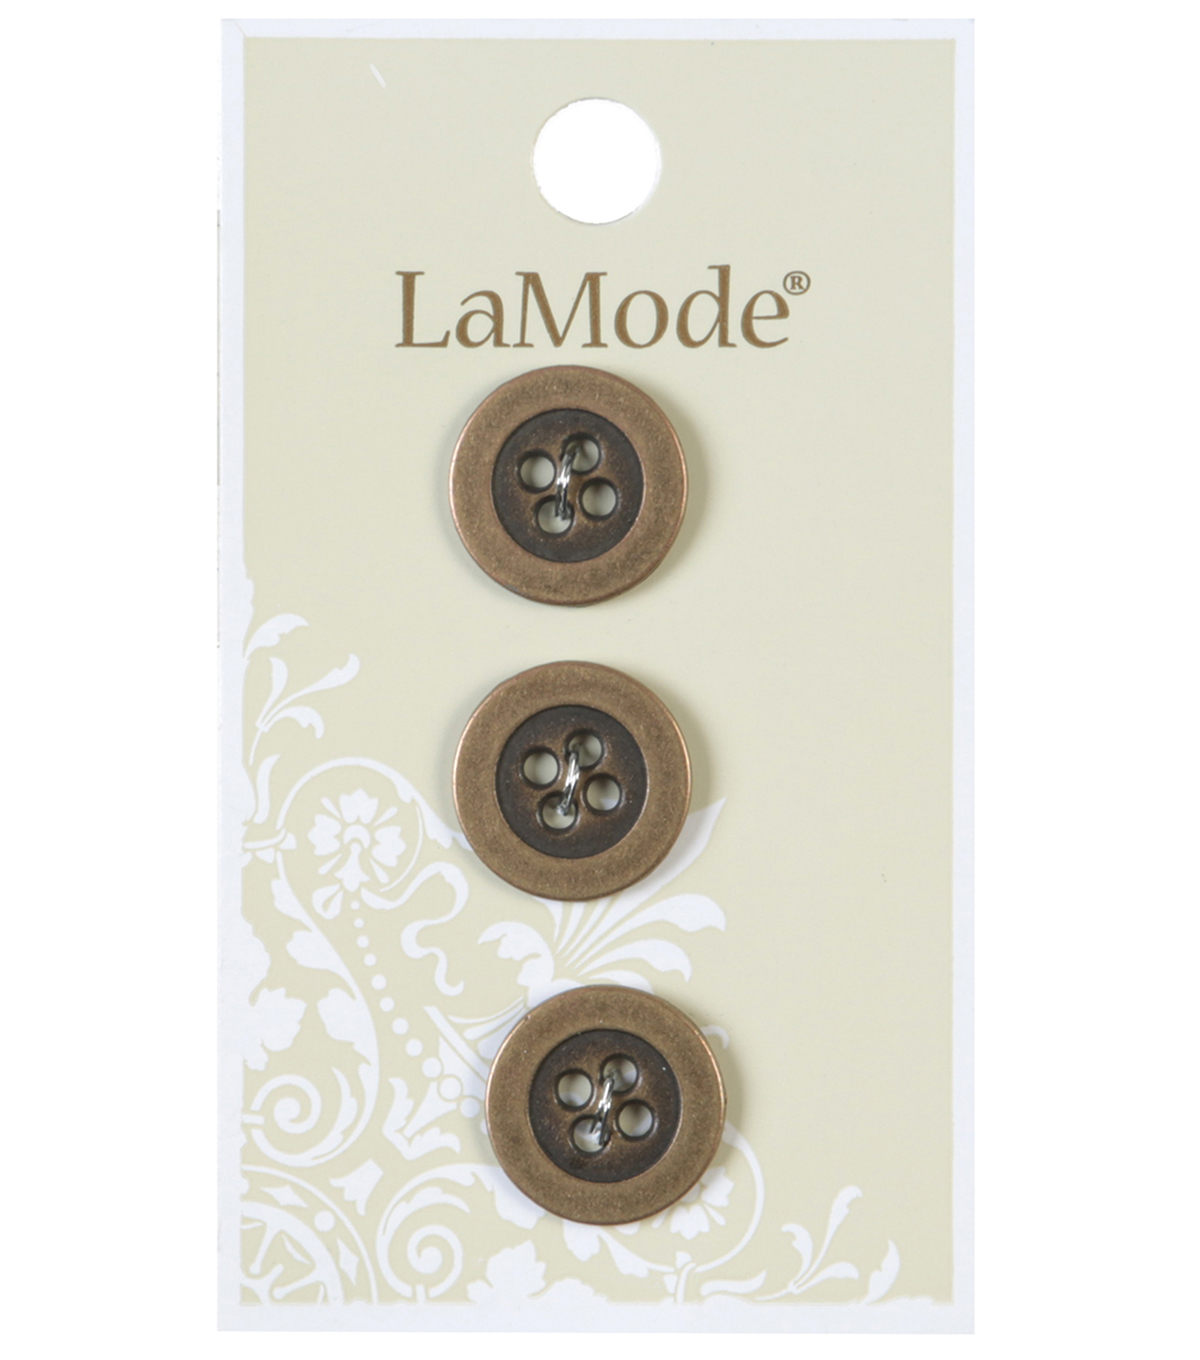 LaMode 4 Hole Antique Gold Metal Buttons 16mm